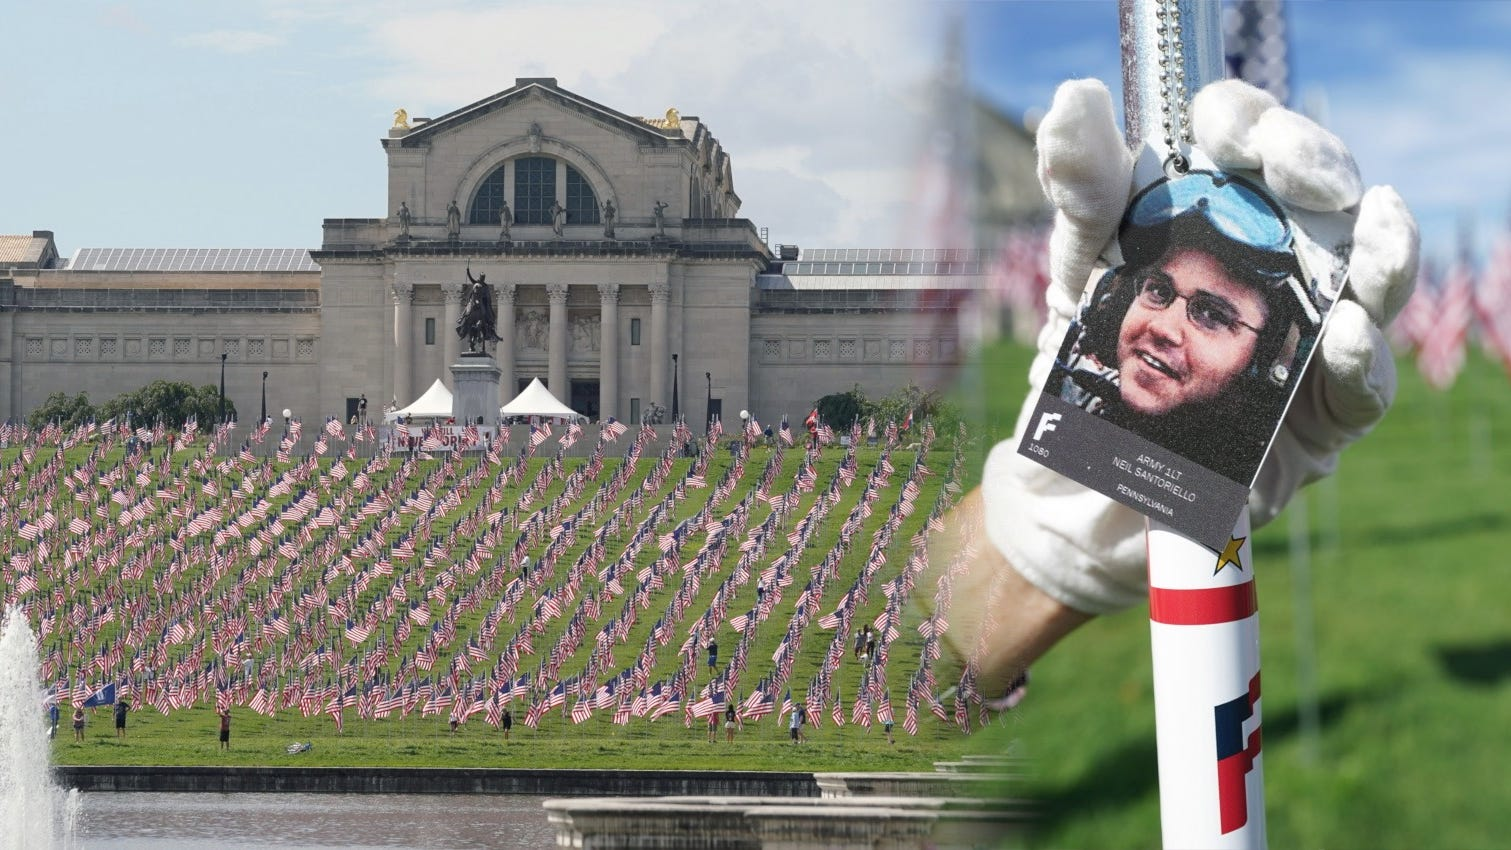 PHOTOS: 7,582 American flags in St. Louis park honor fallen soldiers since 9/11